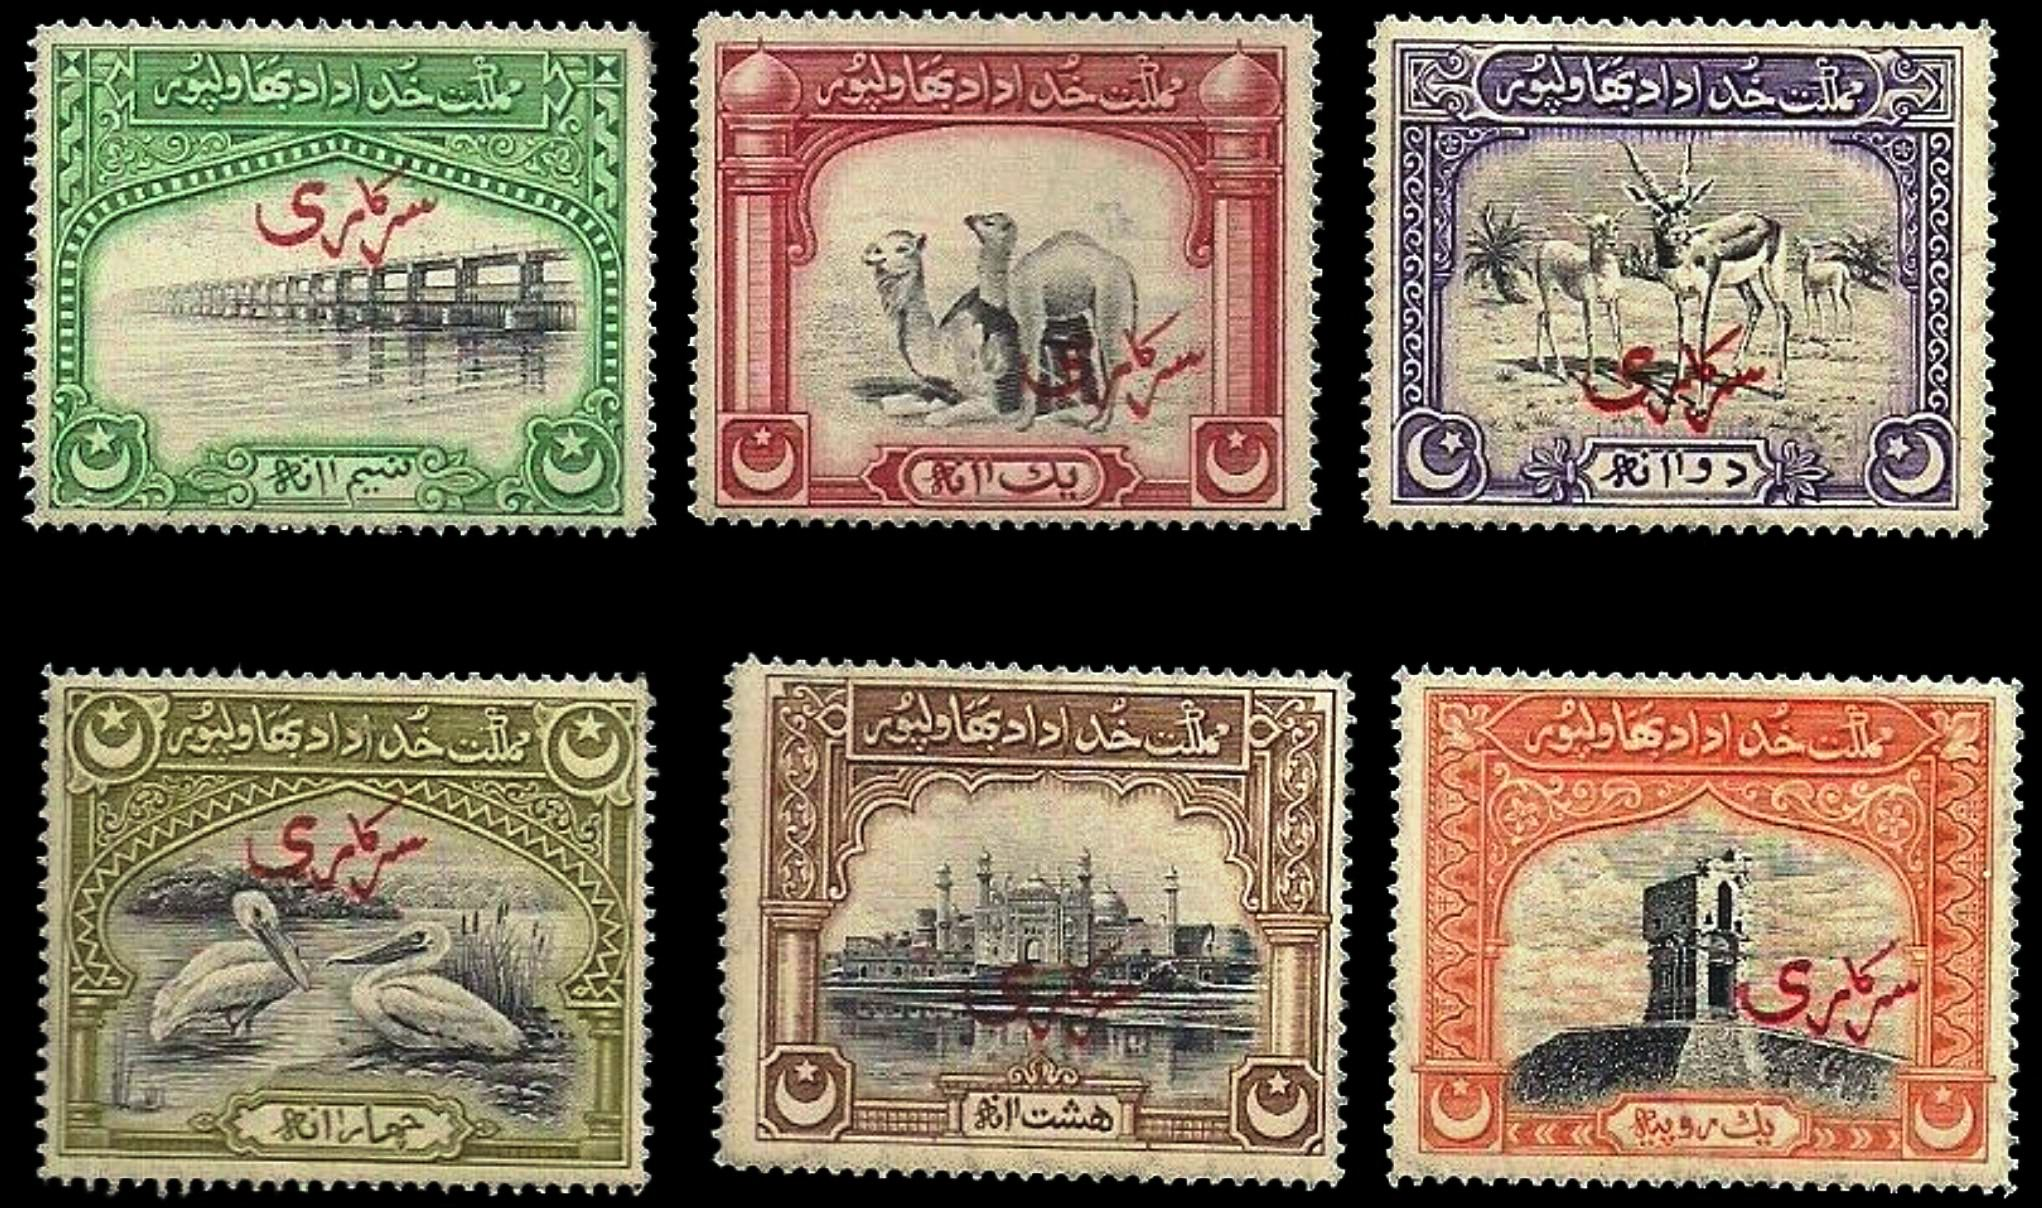 Bahawalpur 1945 Scott #O1-O5 Mint Never Hinged Set